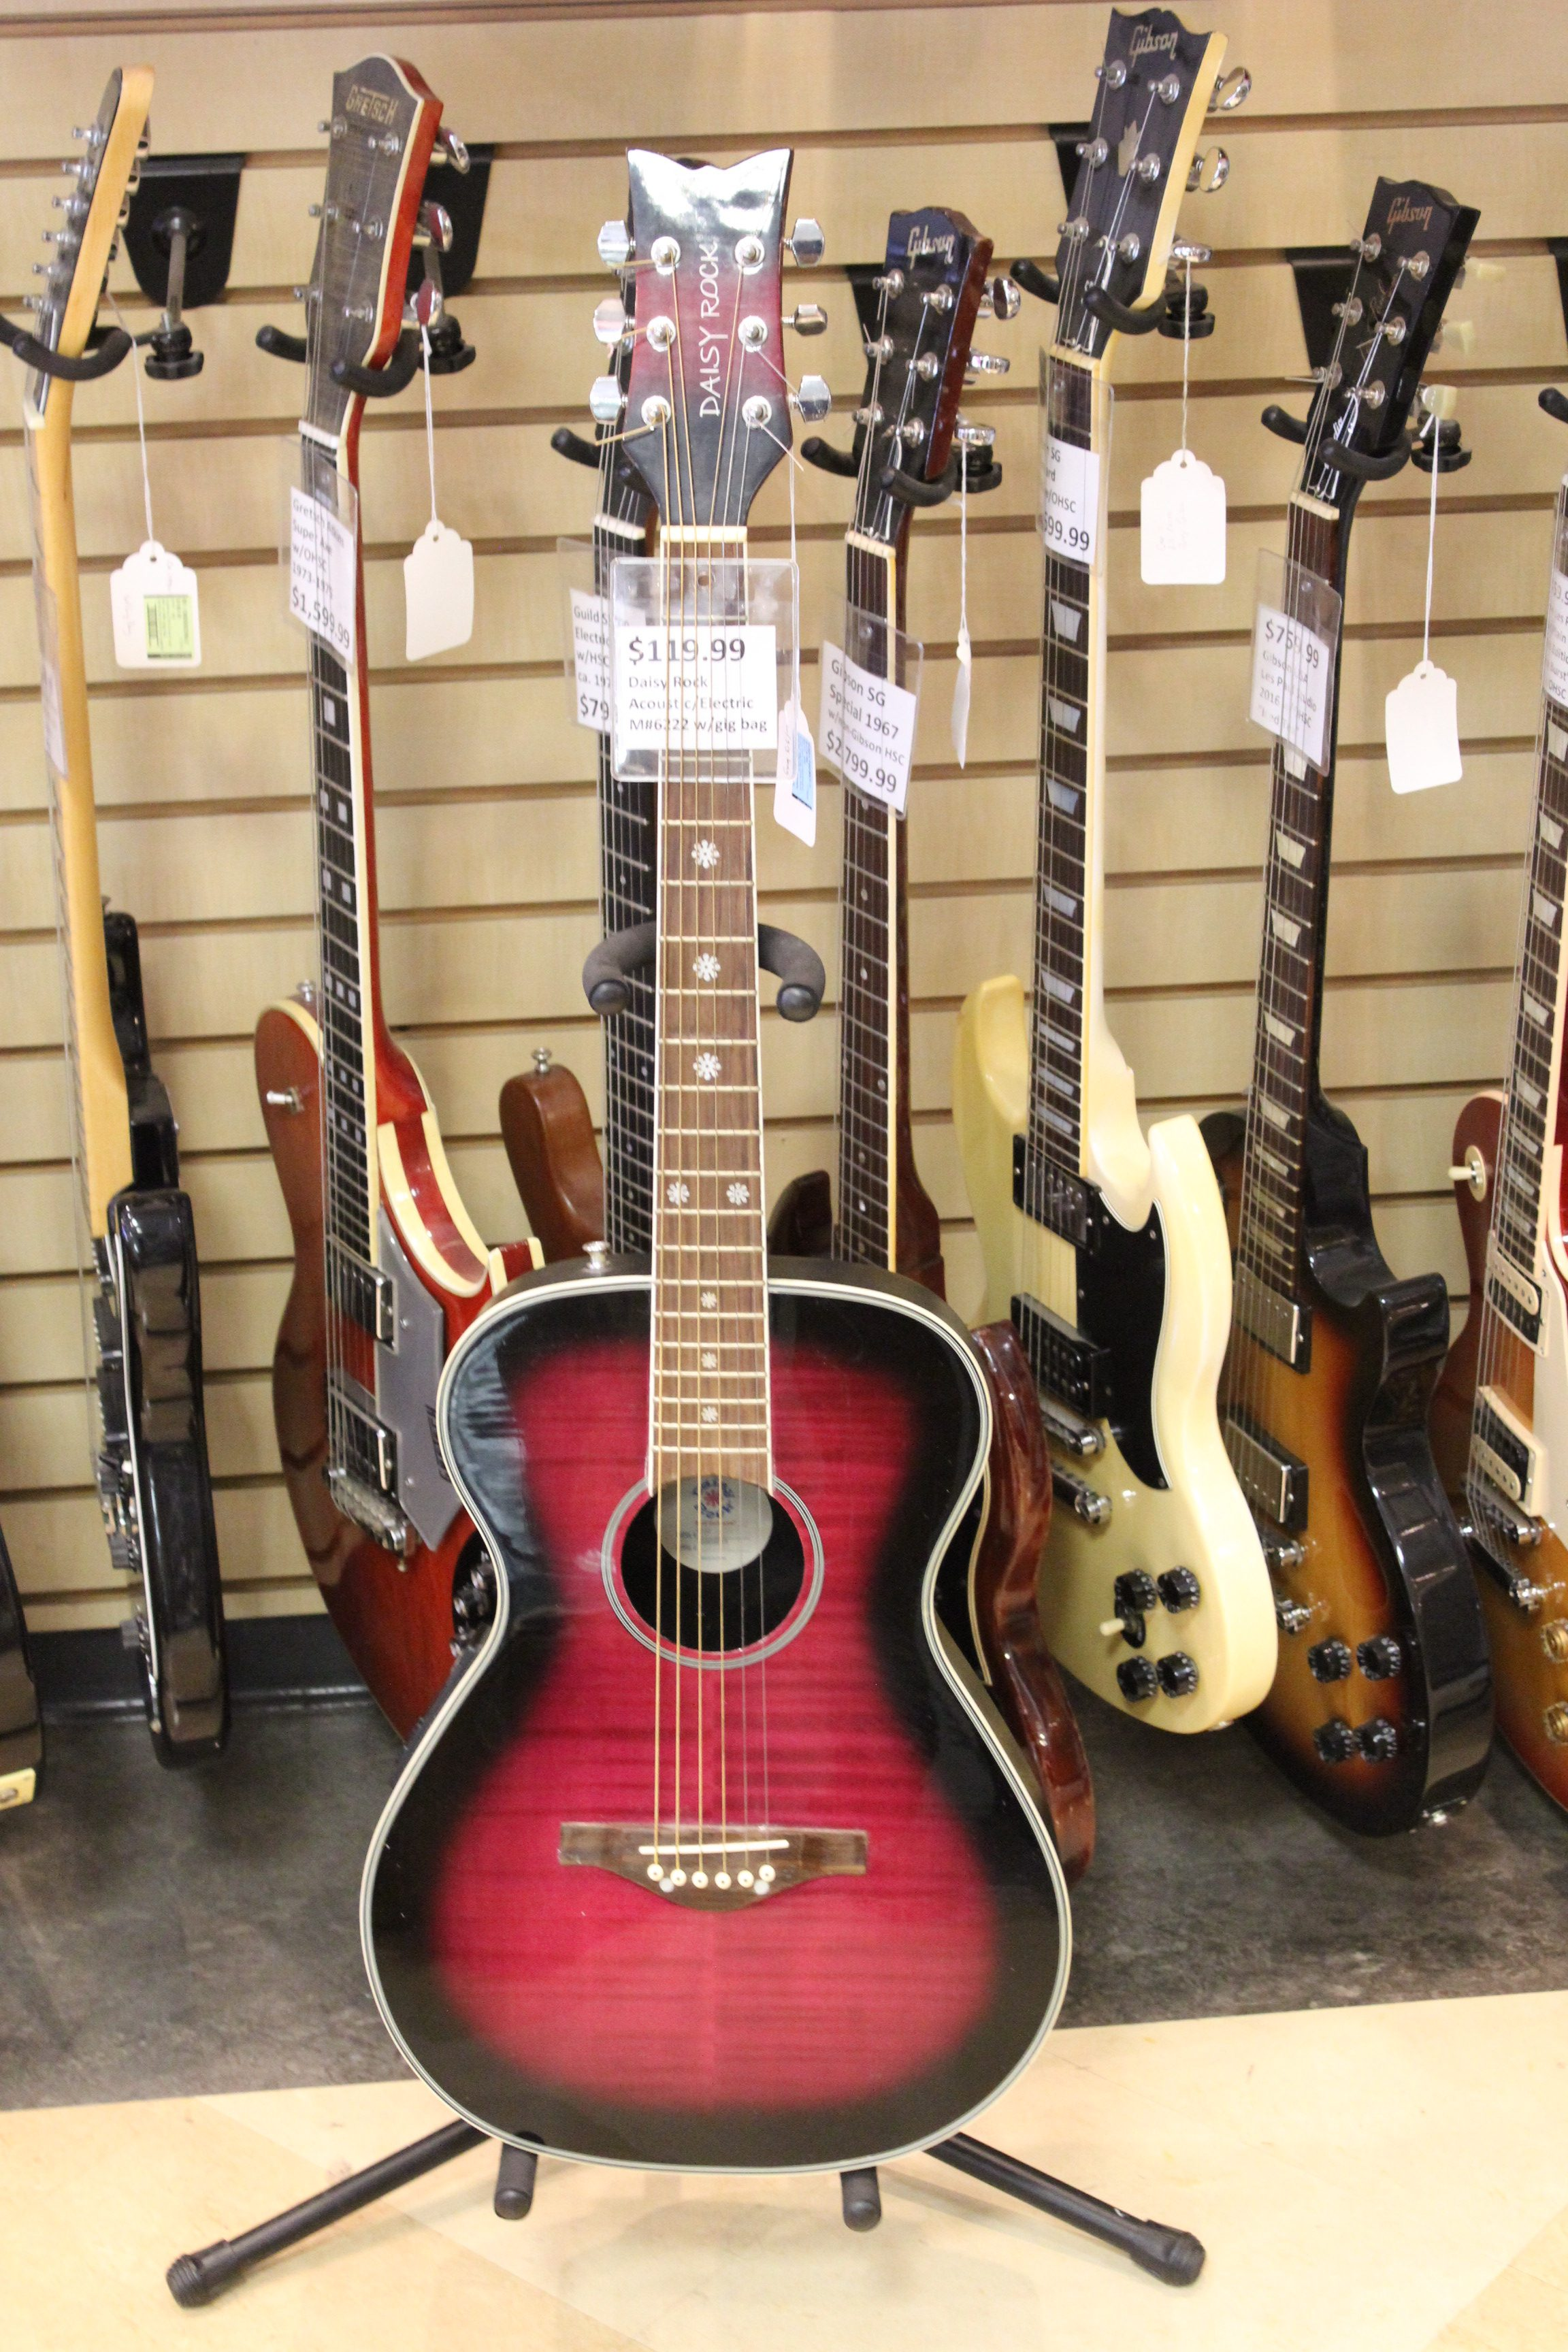 daisy rock 6222 acoustic electric guitar used ted 39 s pawn shop. Black Bedroom Furniture Sets. Home Design Ideas